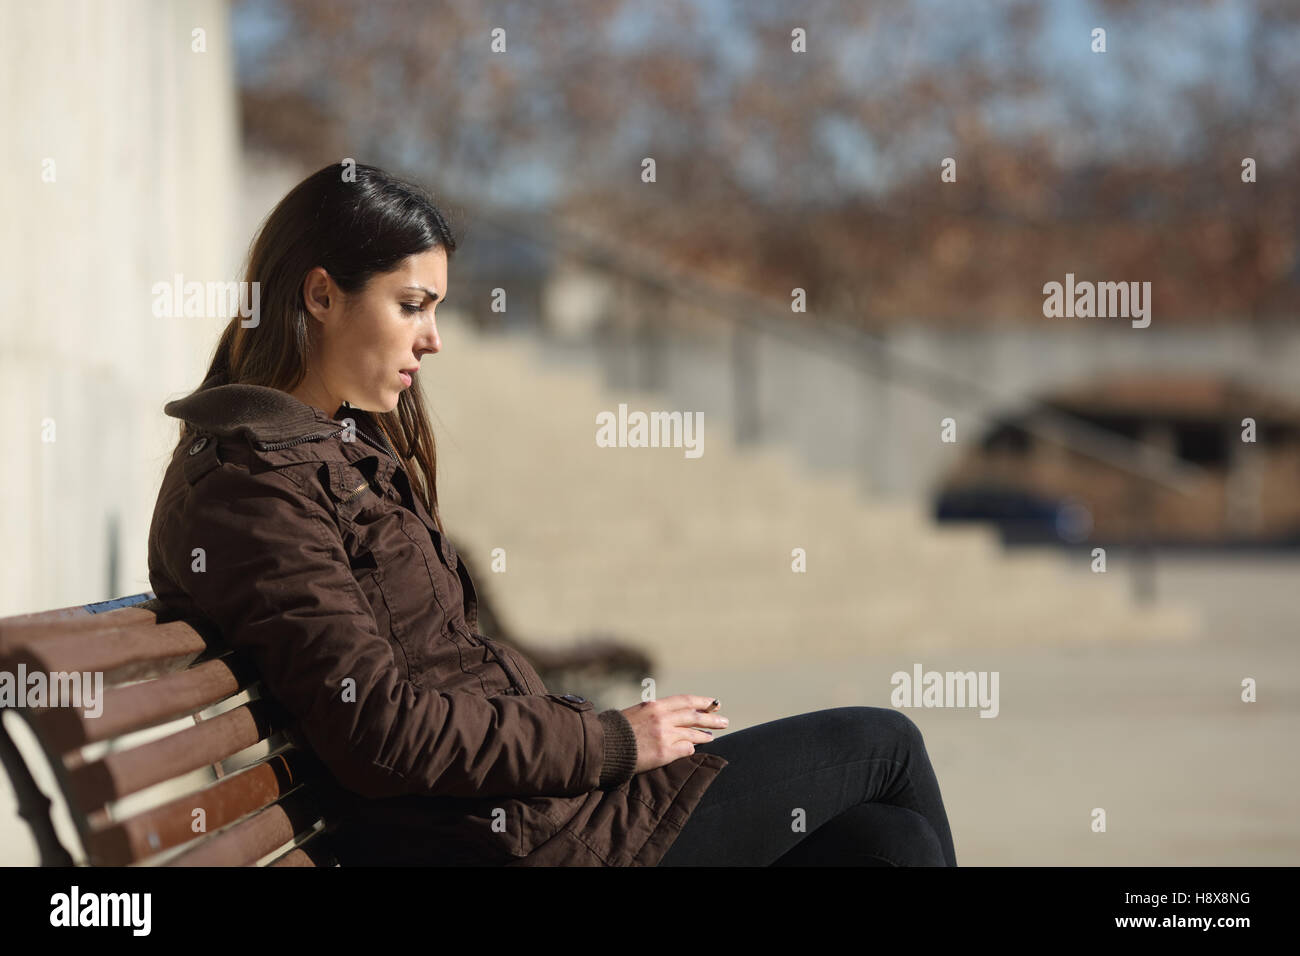 Side view of a sad pensive woman smoking sitting in a bench in the street in winter - Stock Image